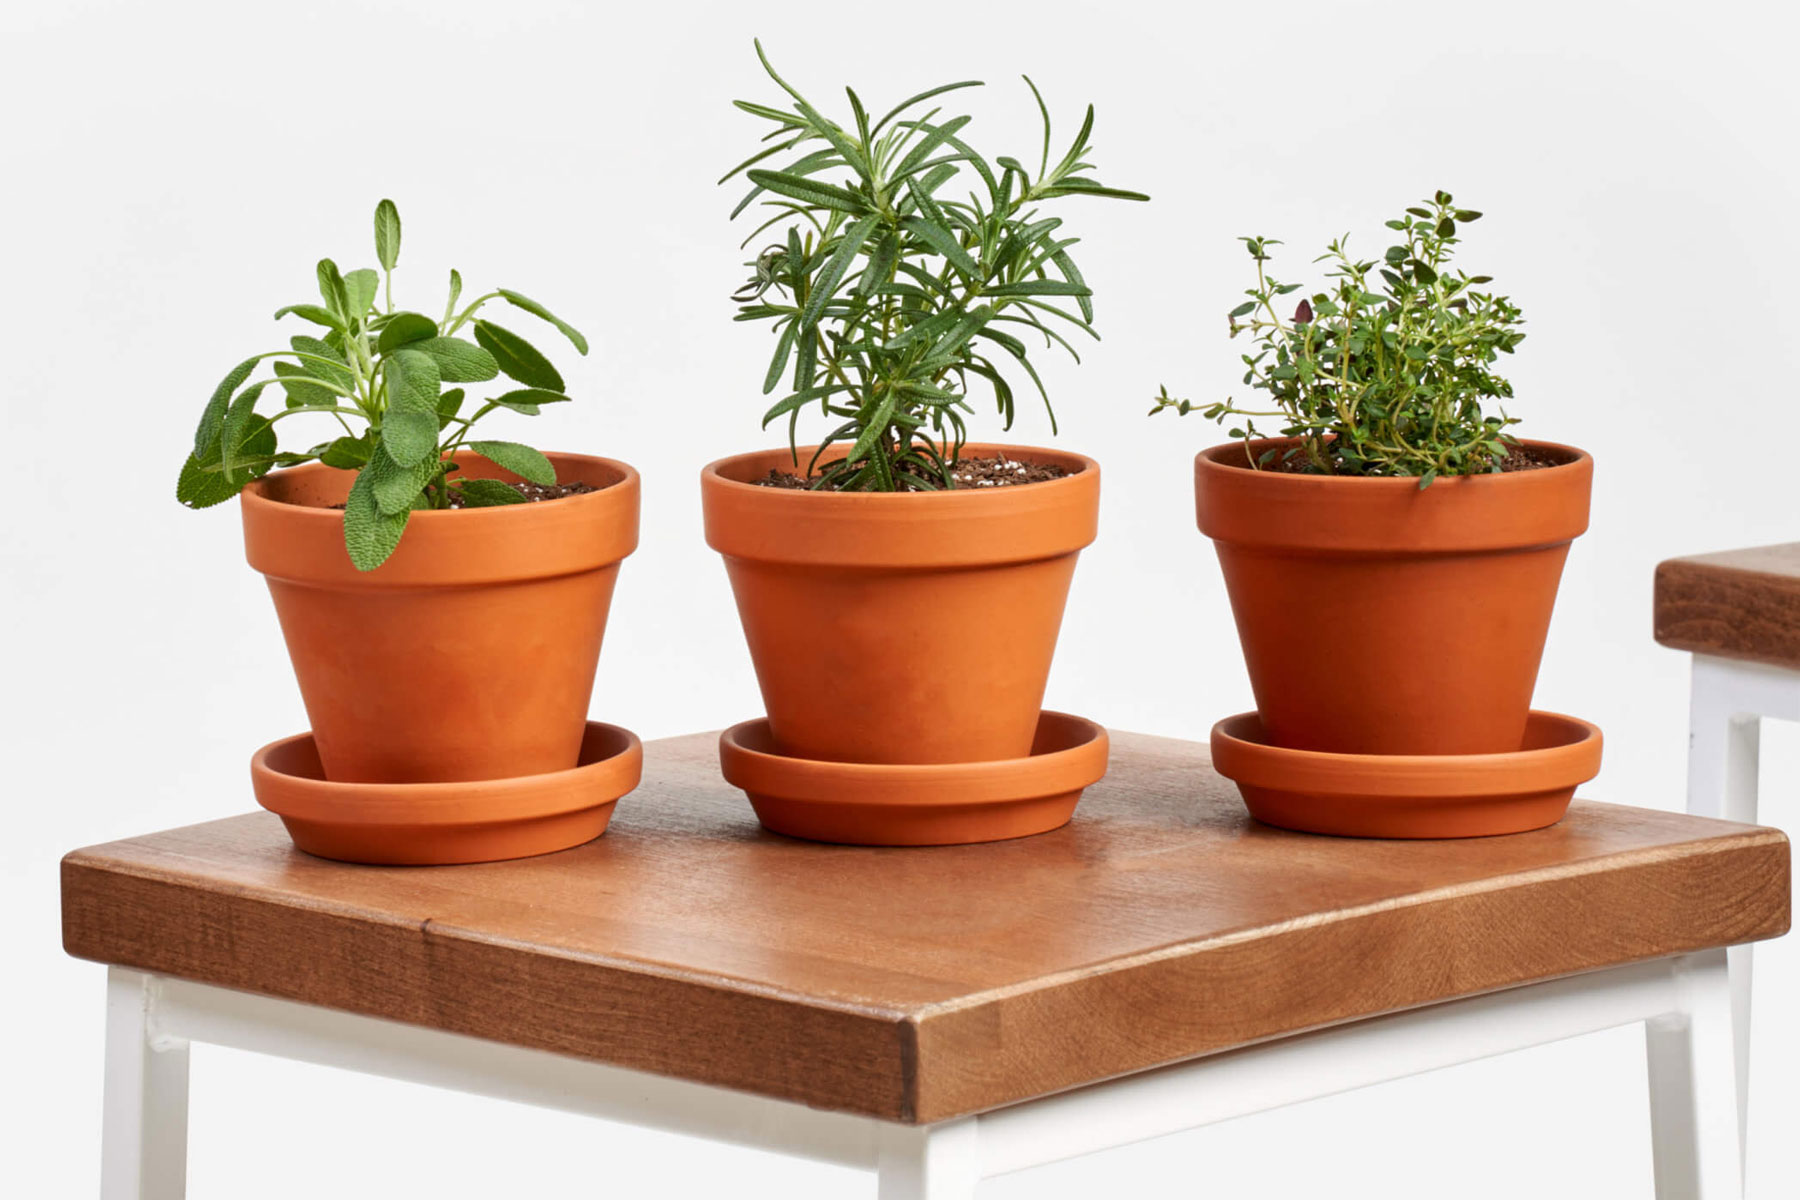 Three potted herb plants